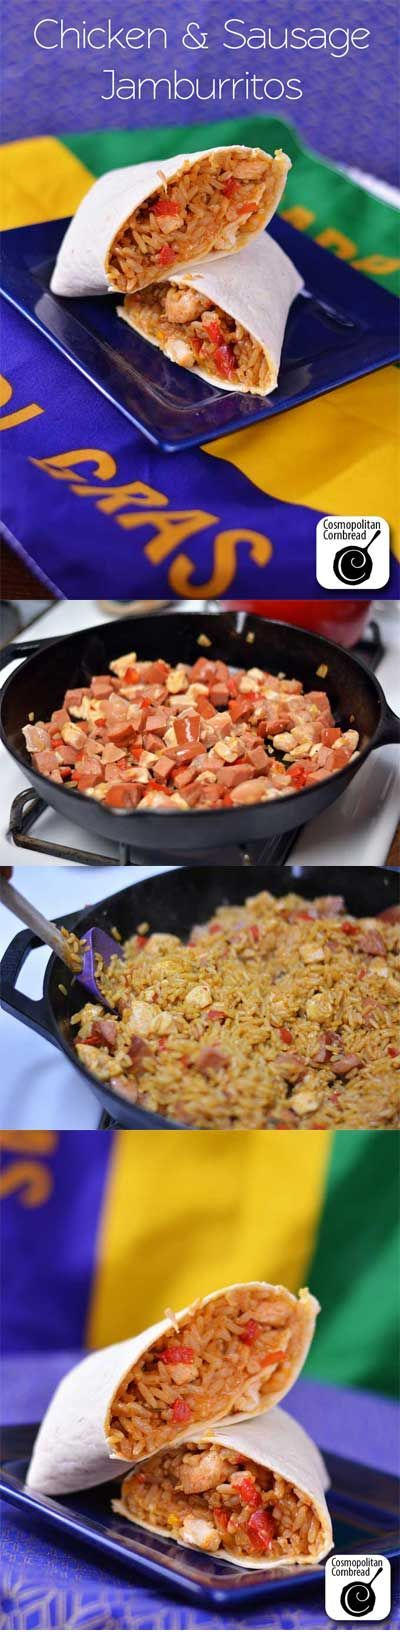 "Chicken and Sausage ""Jamburittos"" have all the flavor of jambalaya in an easy-to-eat-on-the-go package. Get the recipe from Cosmopolitan Cornbread @Zatarains  #SundaySupper"